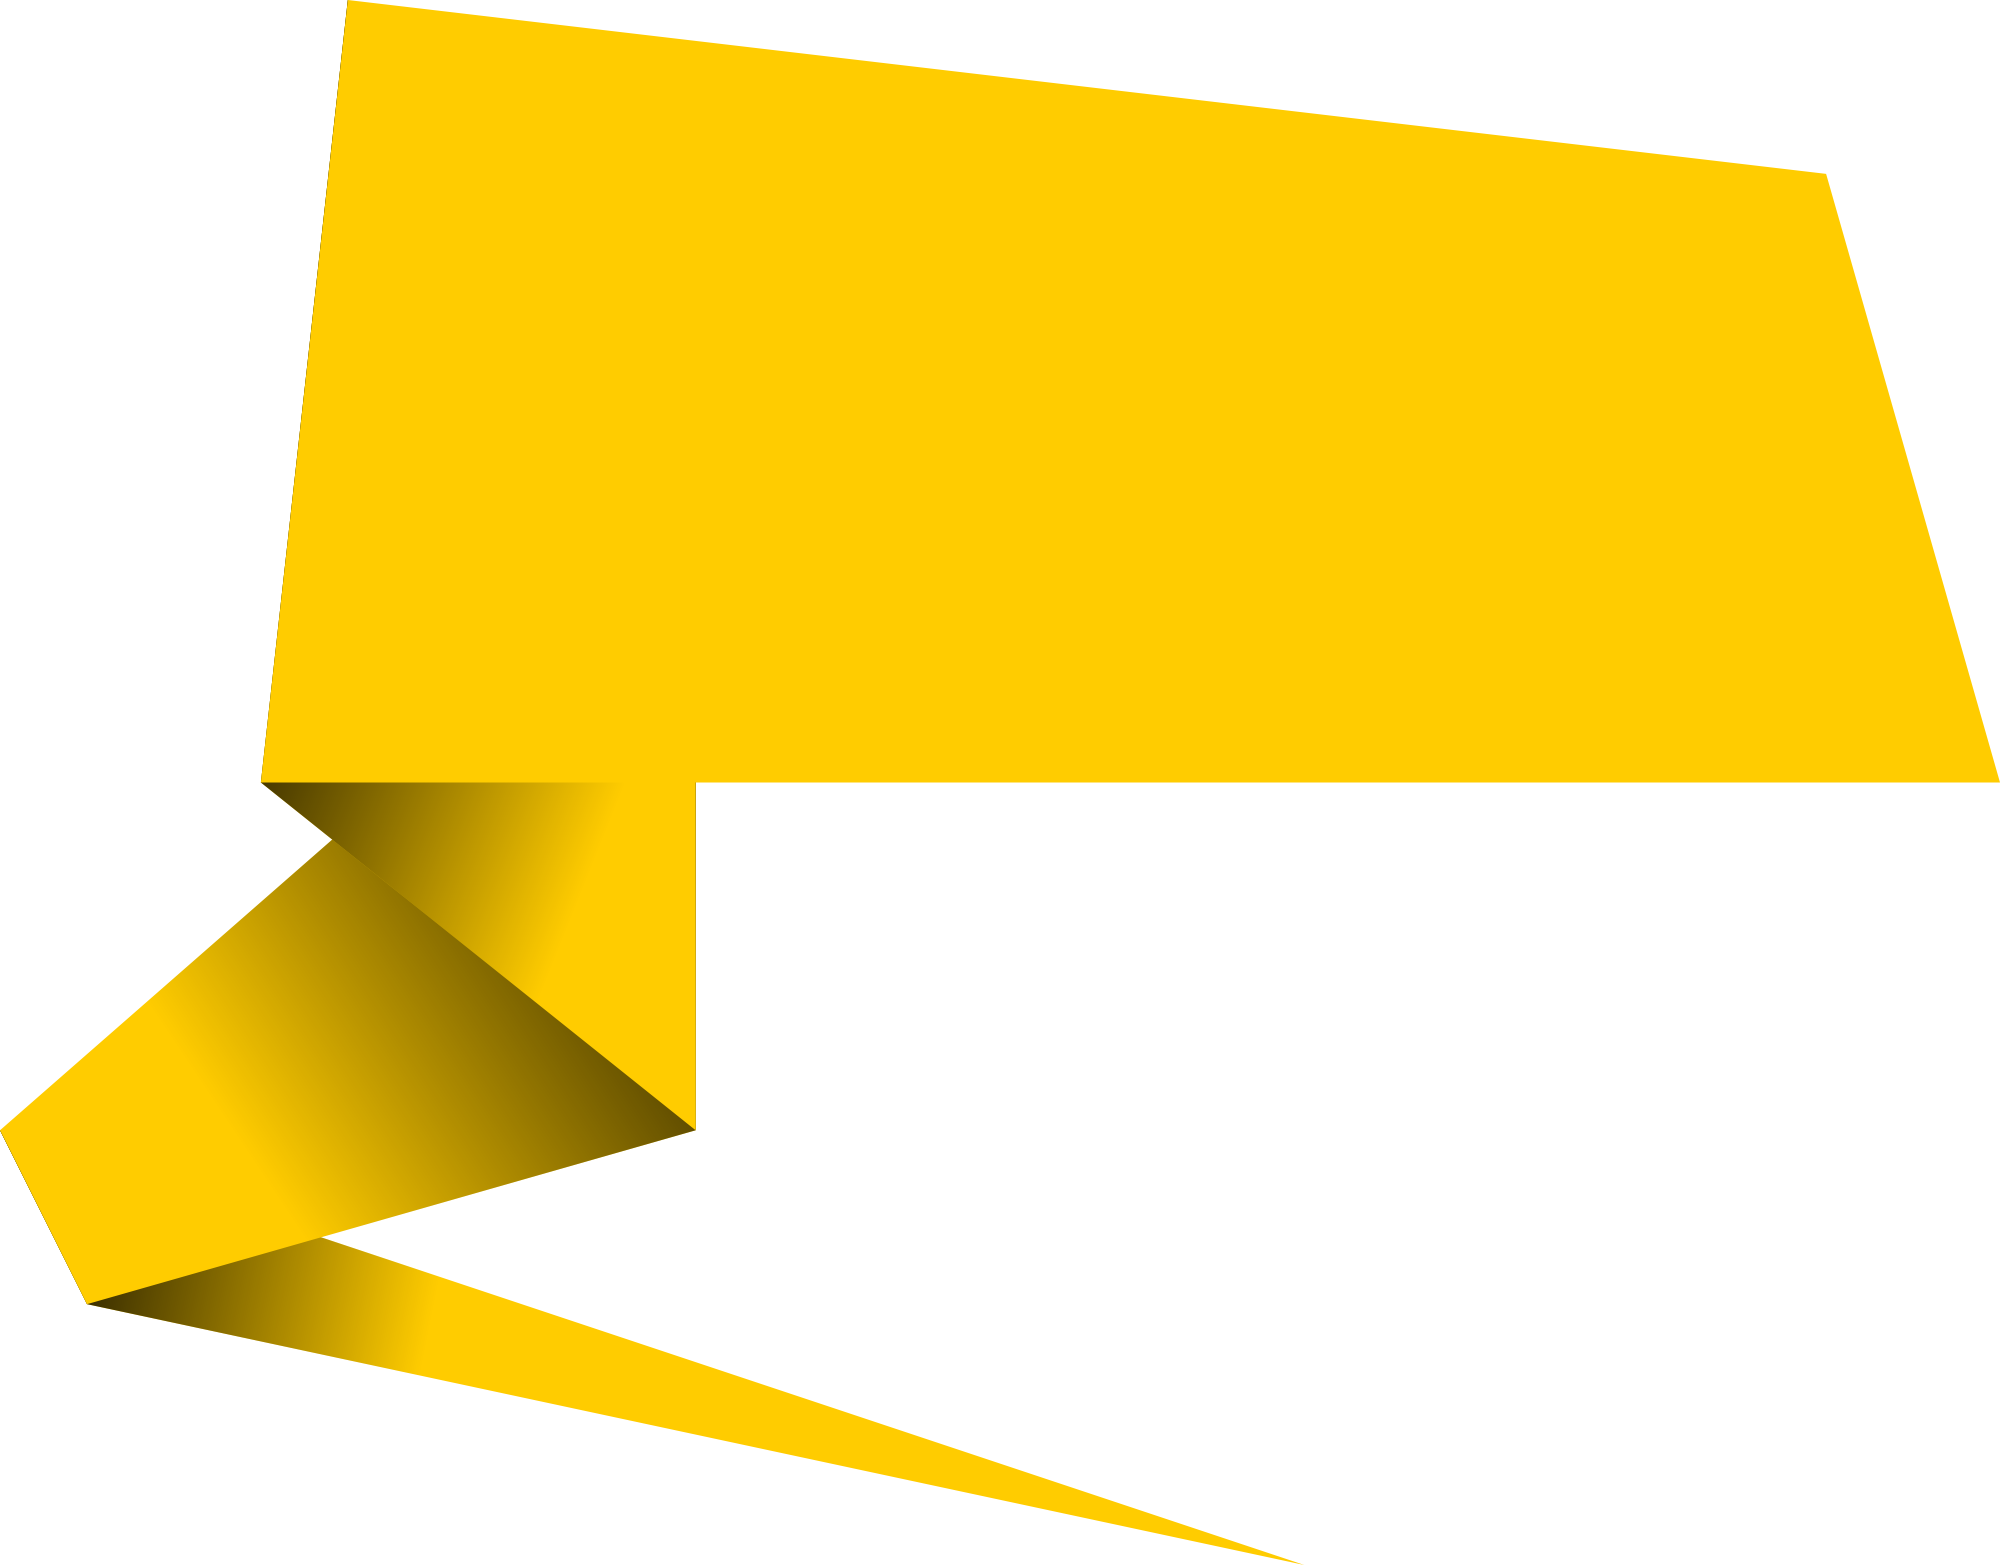 Yellow speech bubble png. Origami banner vector